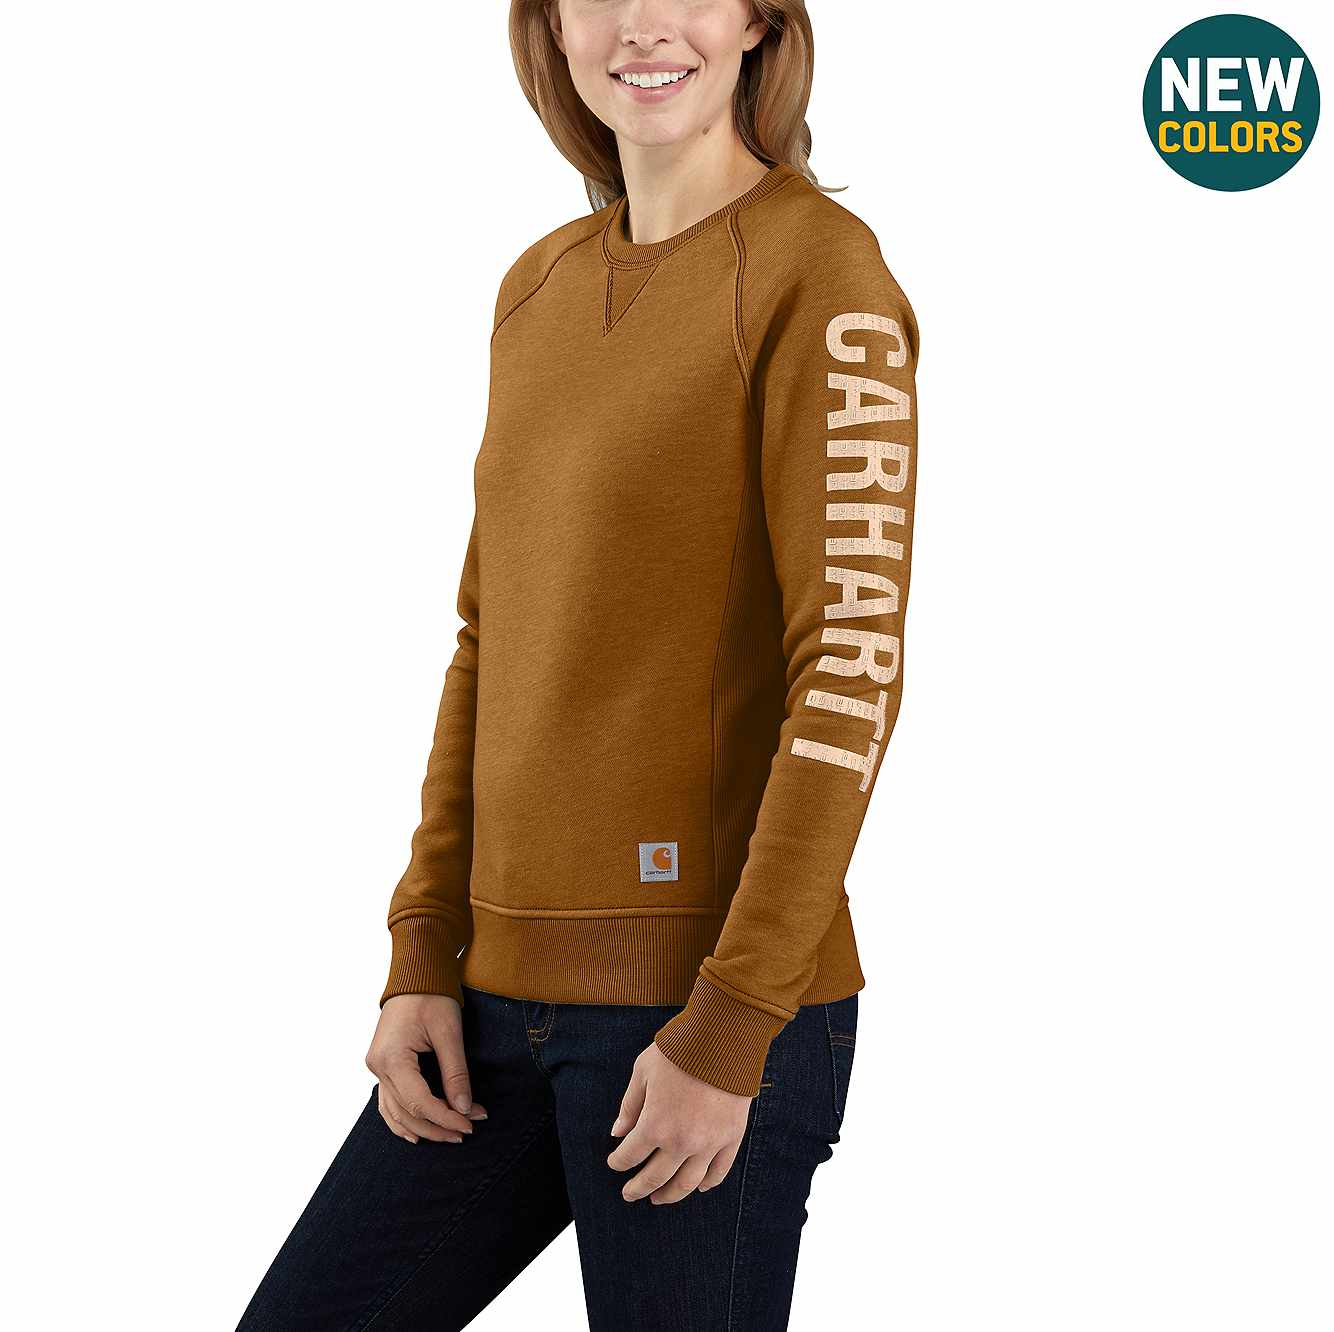 Picture of Carhartt® Relaxed Fit Midweight Crewneck Carhartt Graphic Sweatshirt in Oiled Walnut Heather